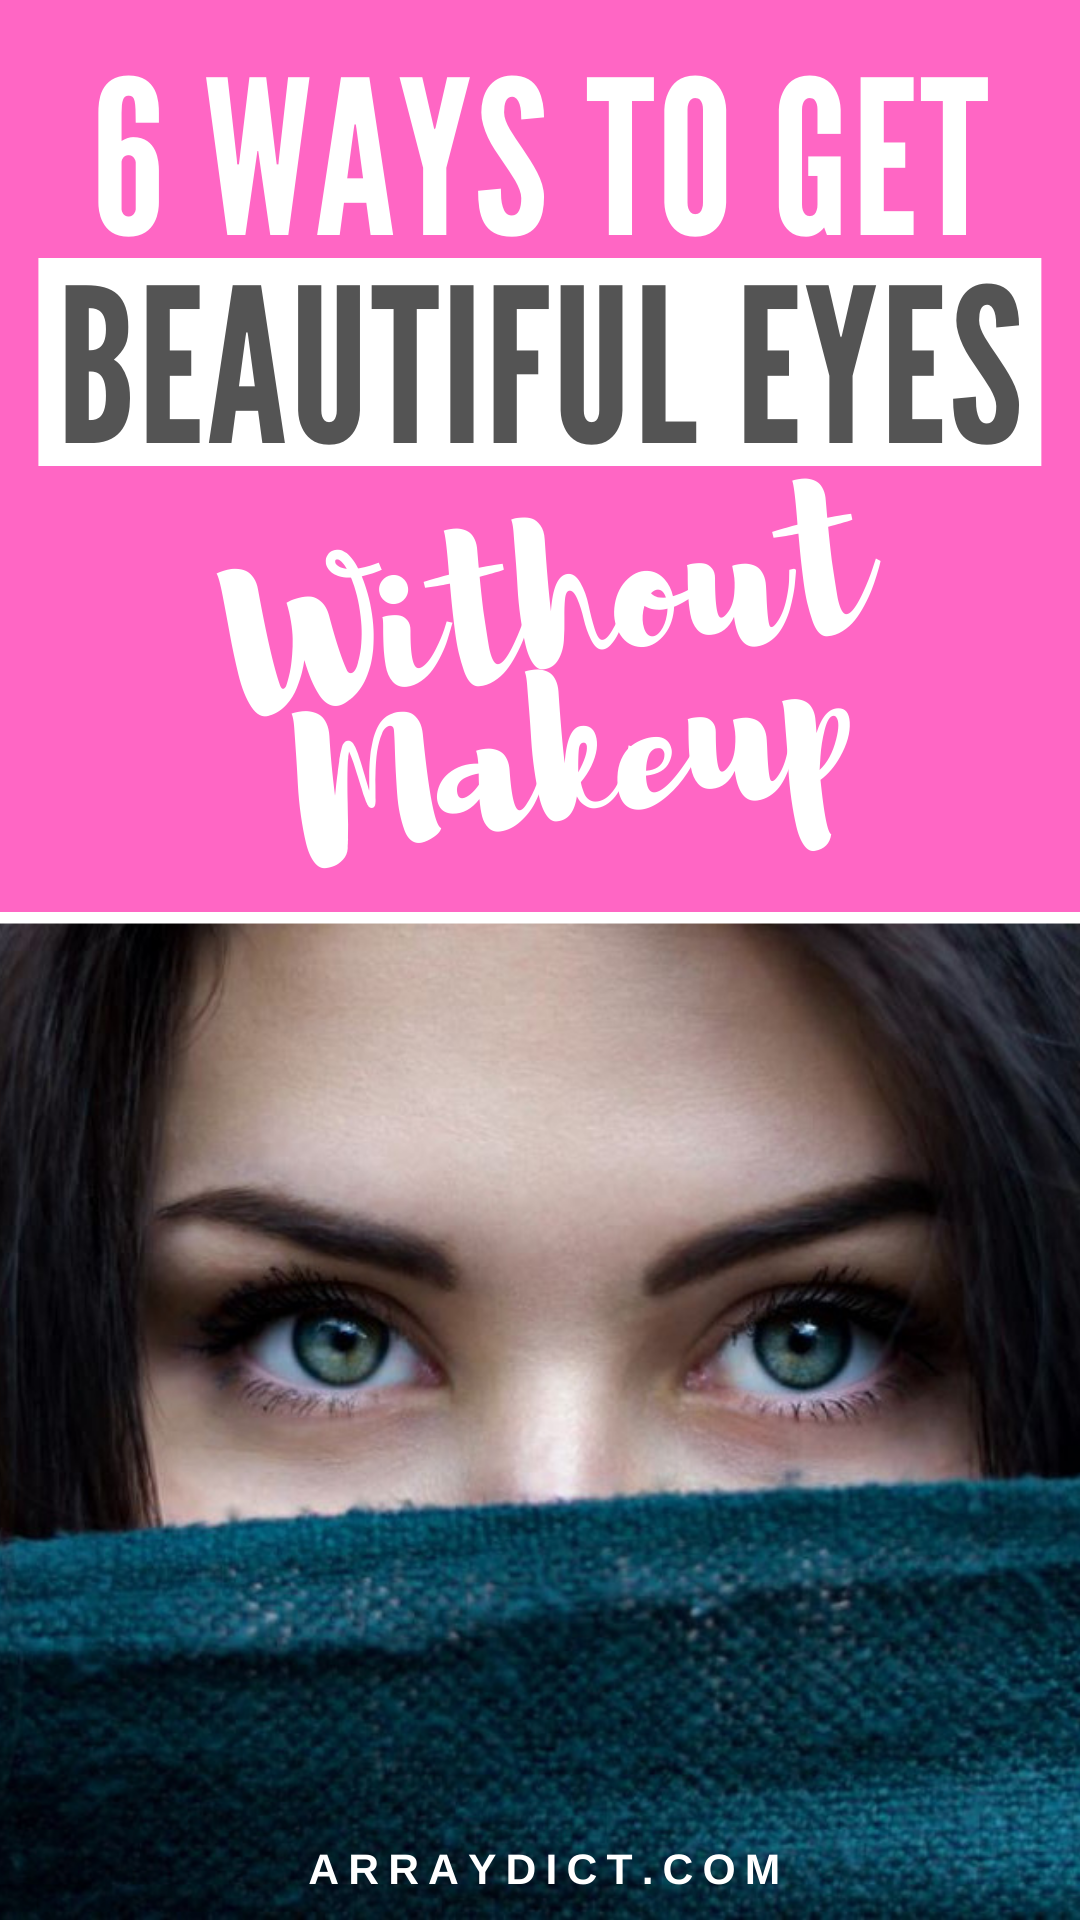 03a7bc954ffd14514258ca0161caa4aa - How To Get Eye Makeup Off Without Makeup Remover